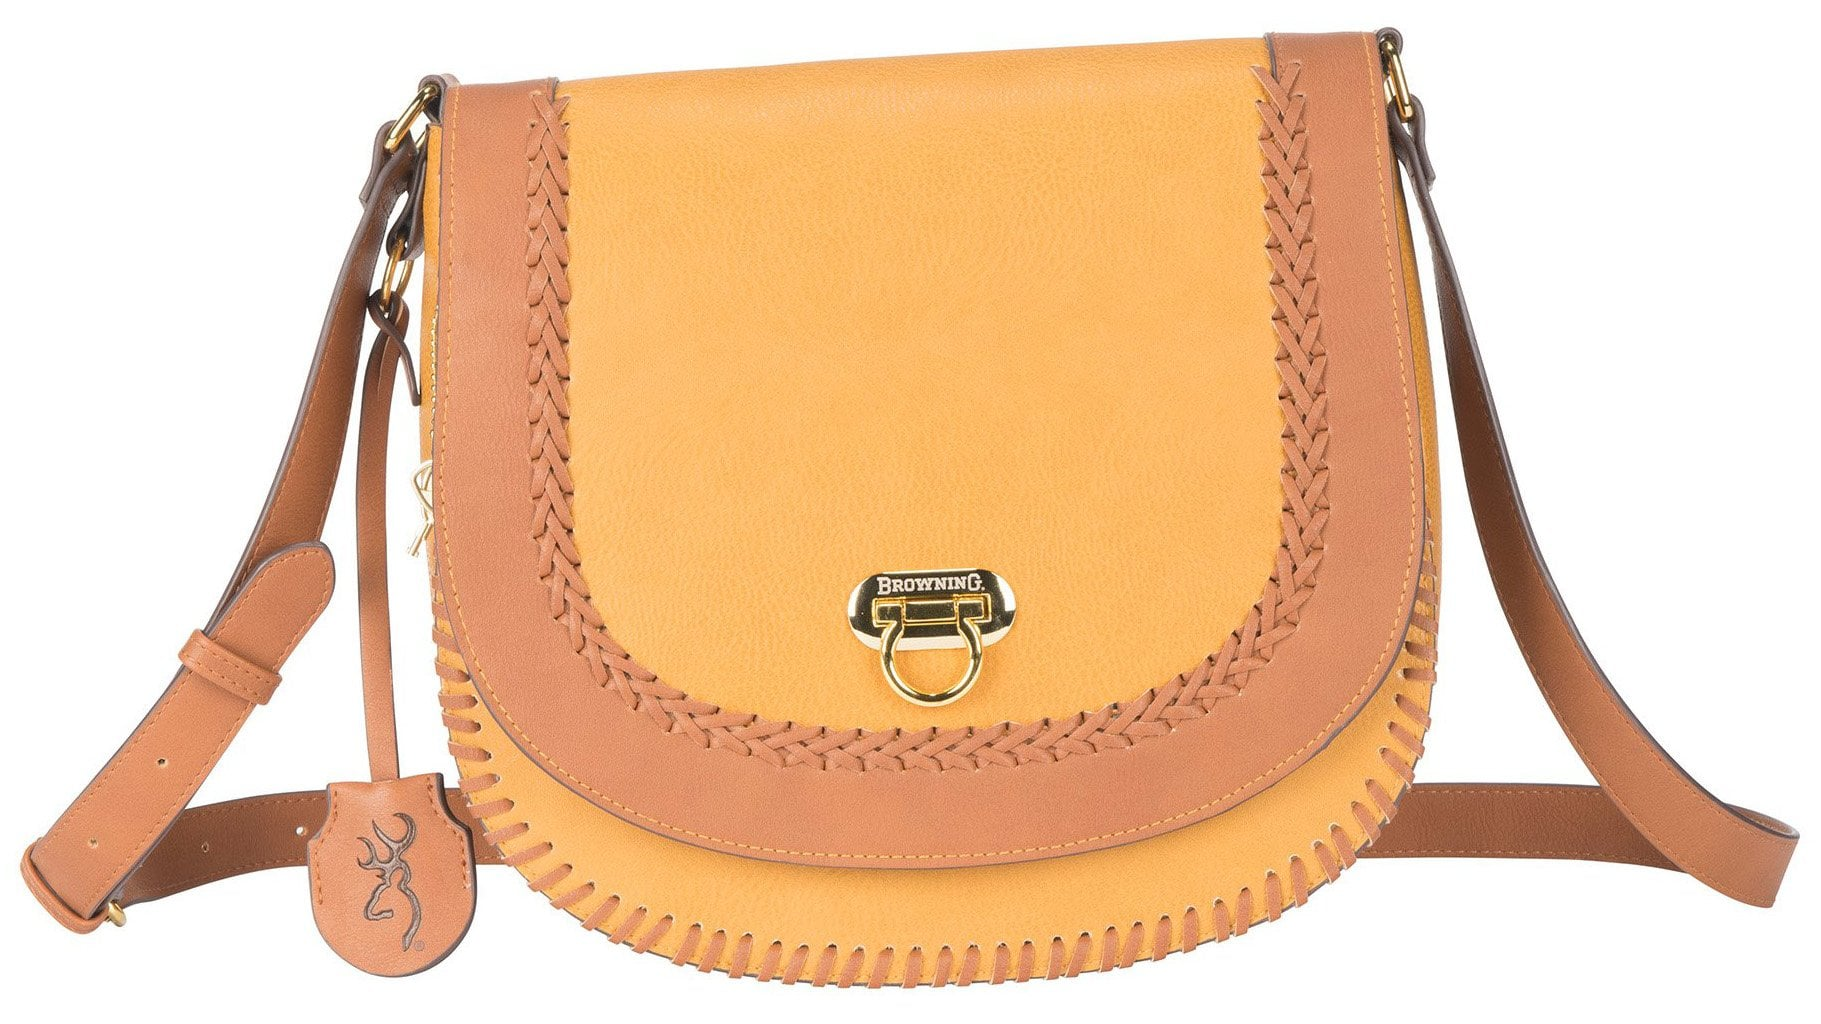 Secretly carry your weapon in this chic but deadly Browning Oakley concealed carry bag